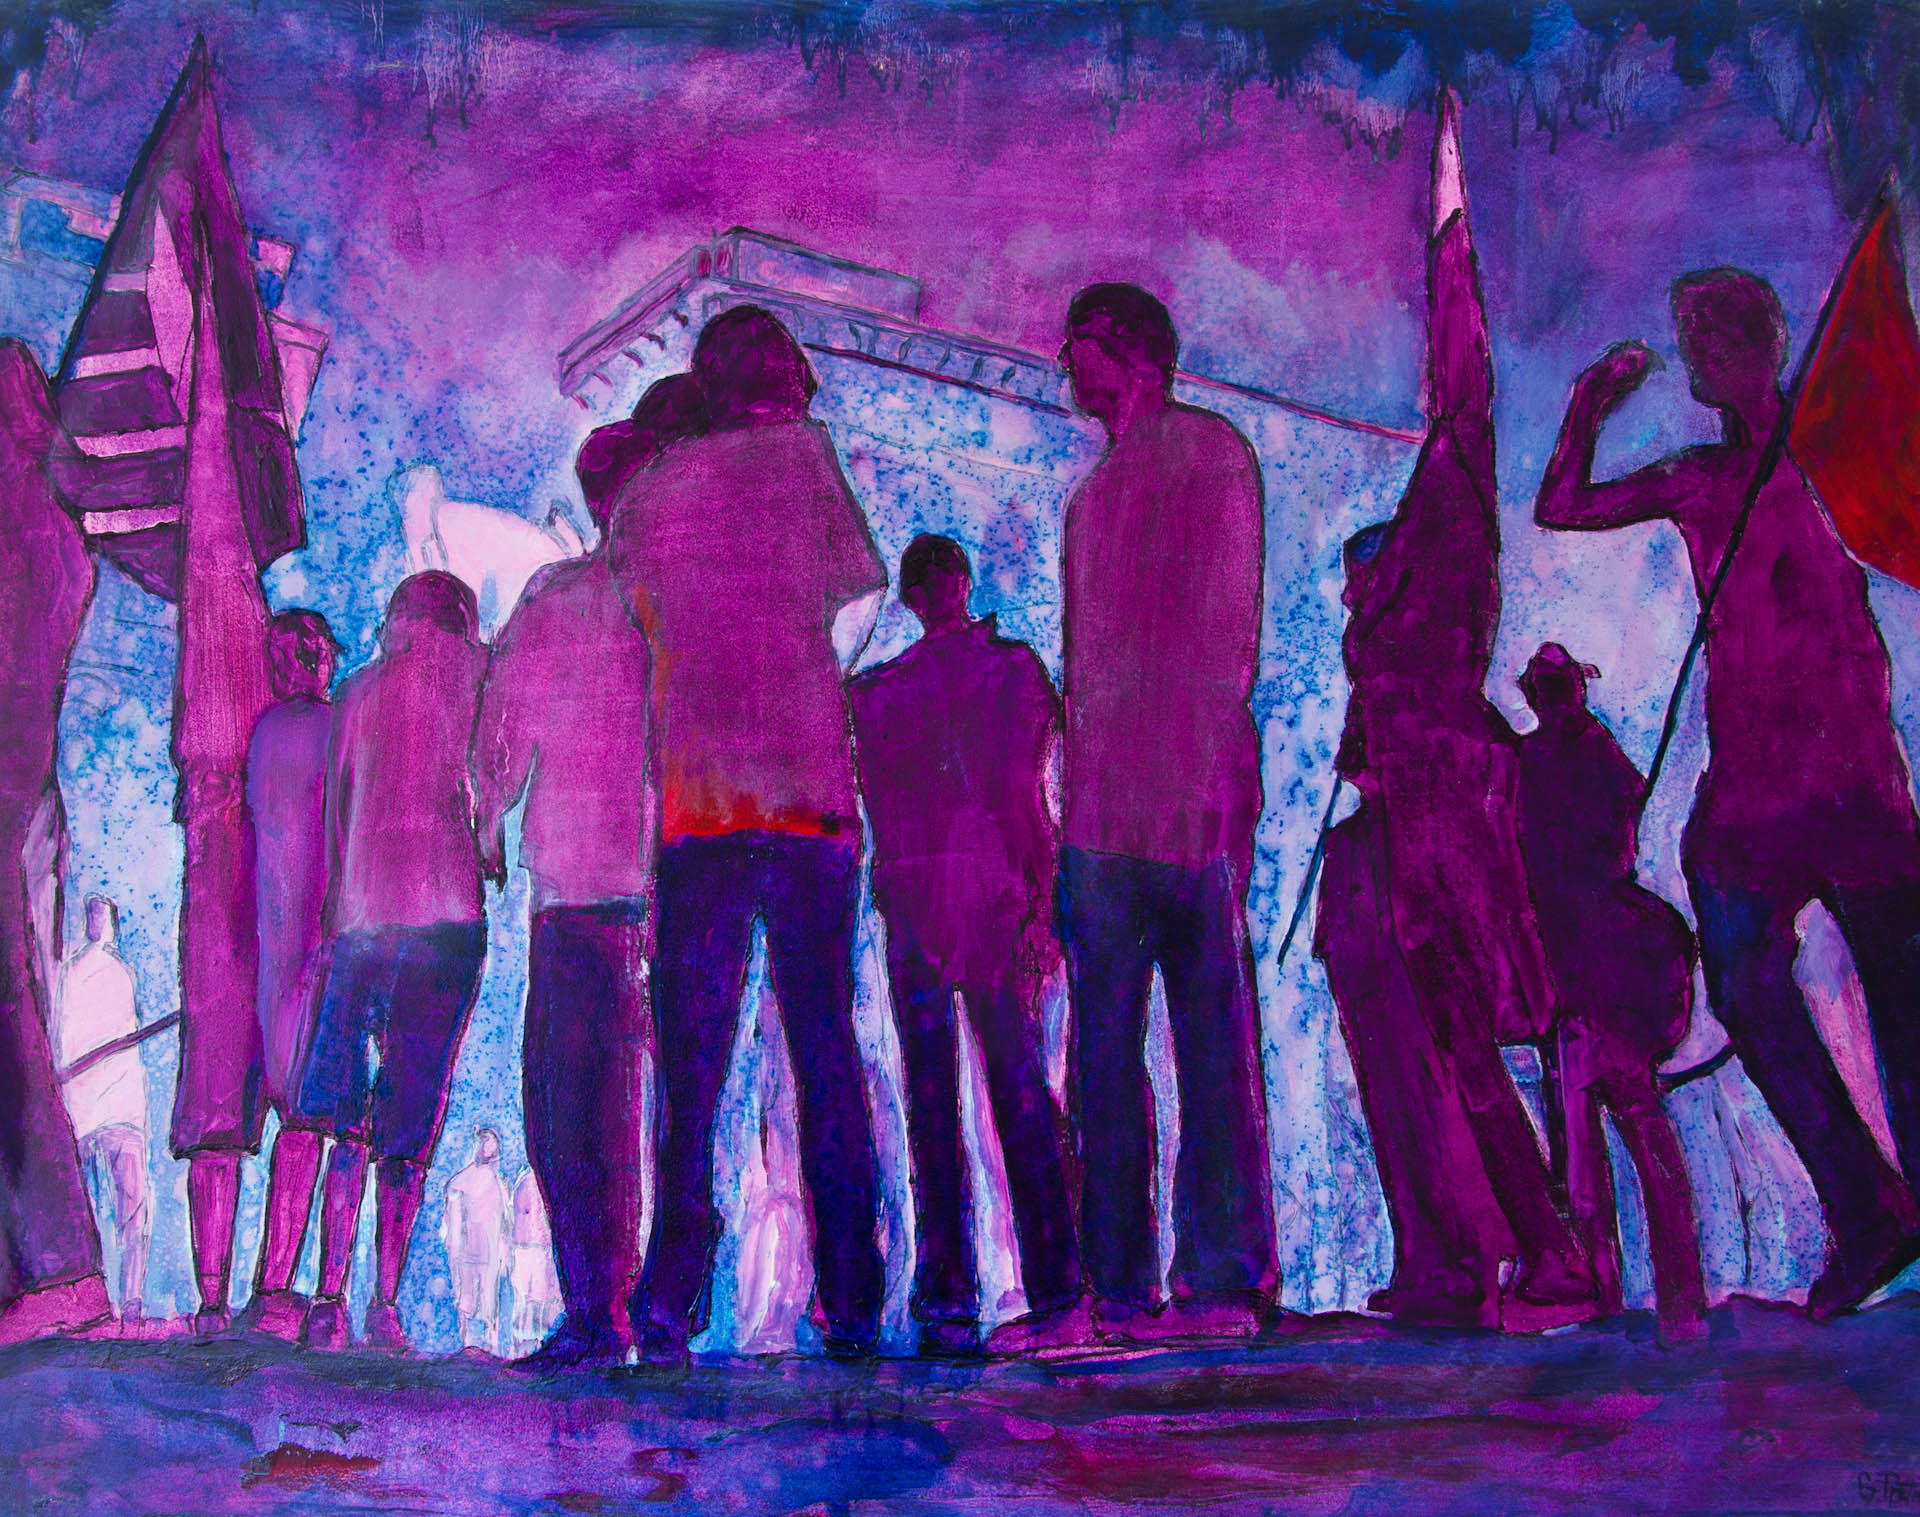 Violet_uprising_oil_on_woodboard_90x115cm_2012.jpg